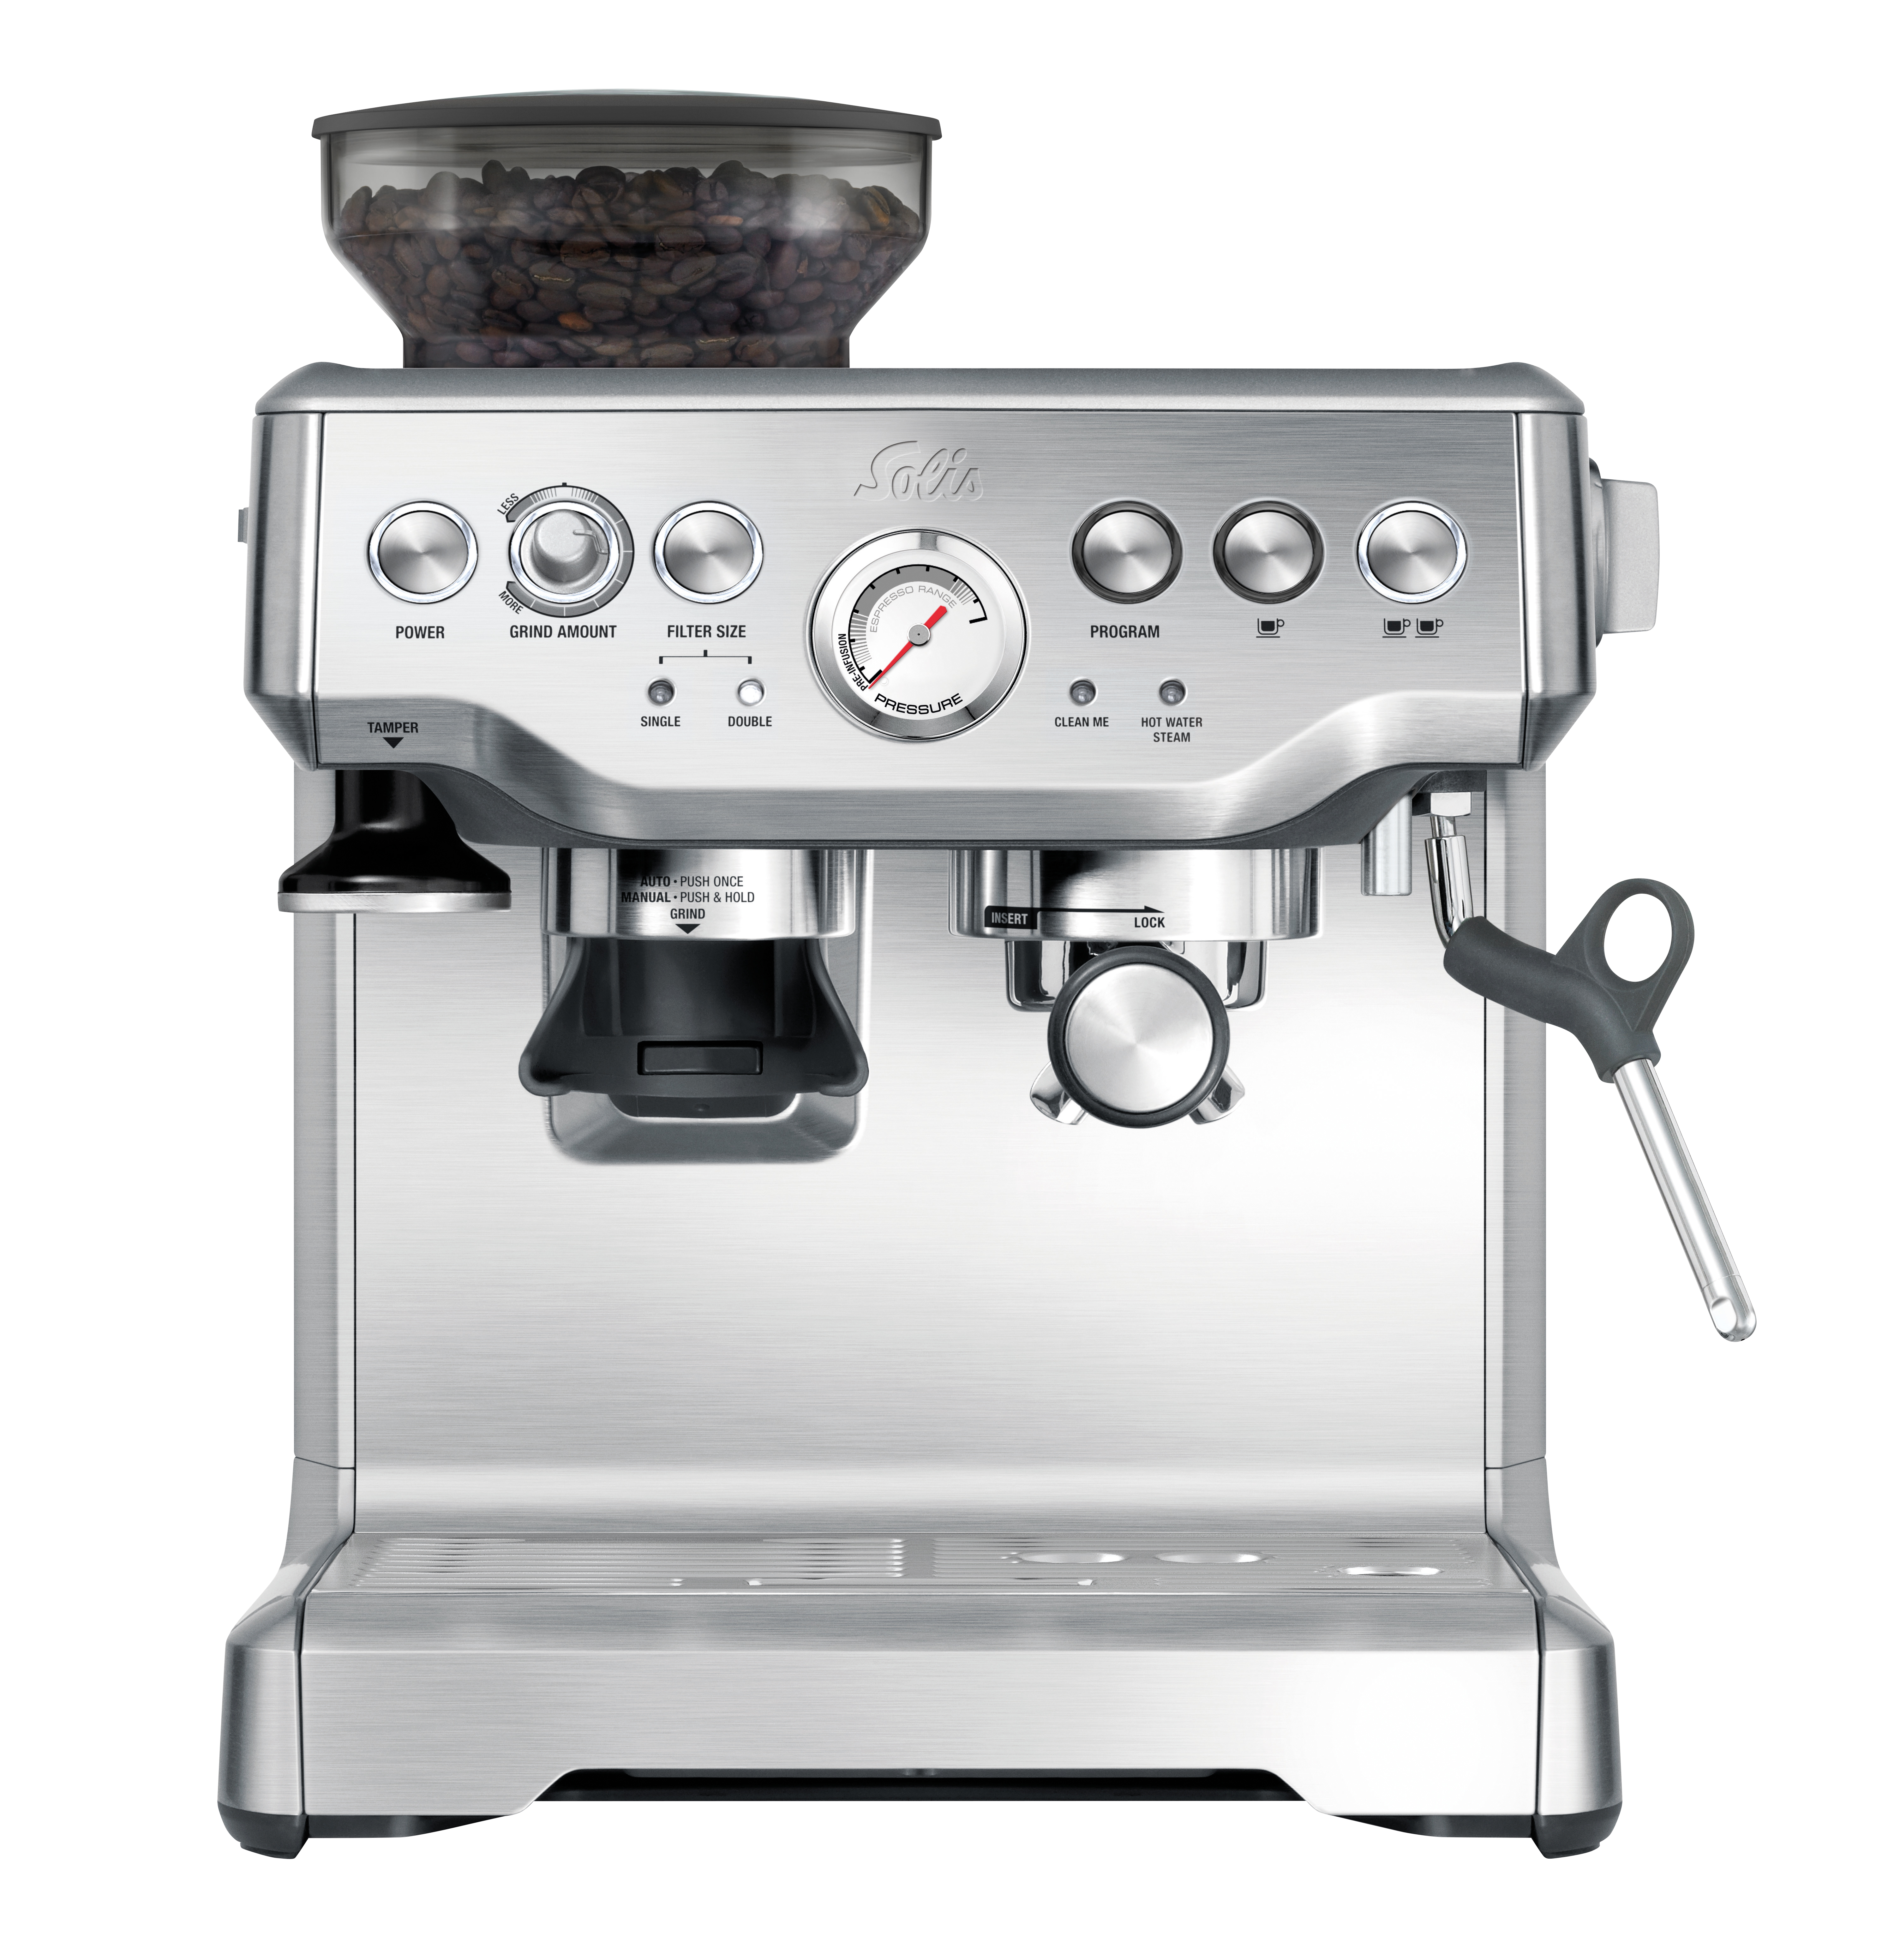 Image of Solis Grind & Infuse Pro (Type 115)